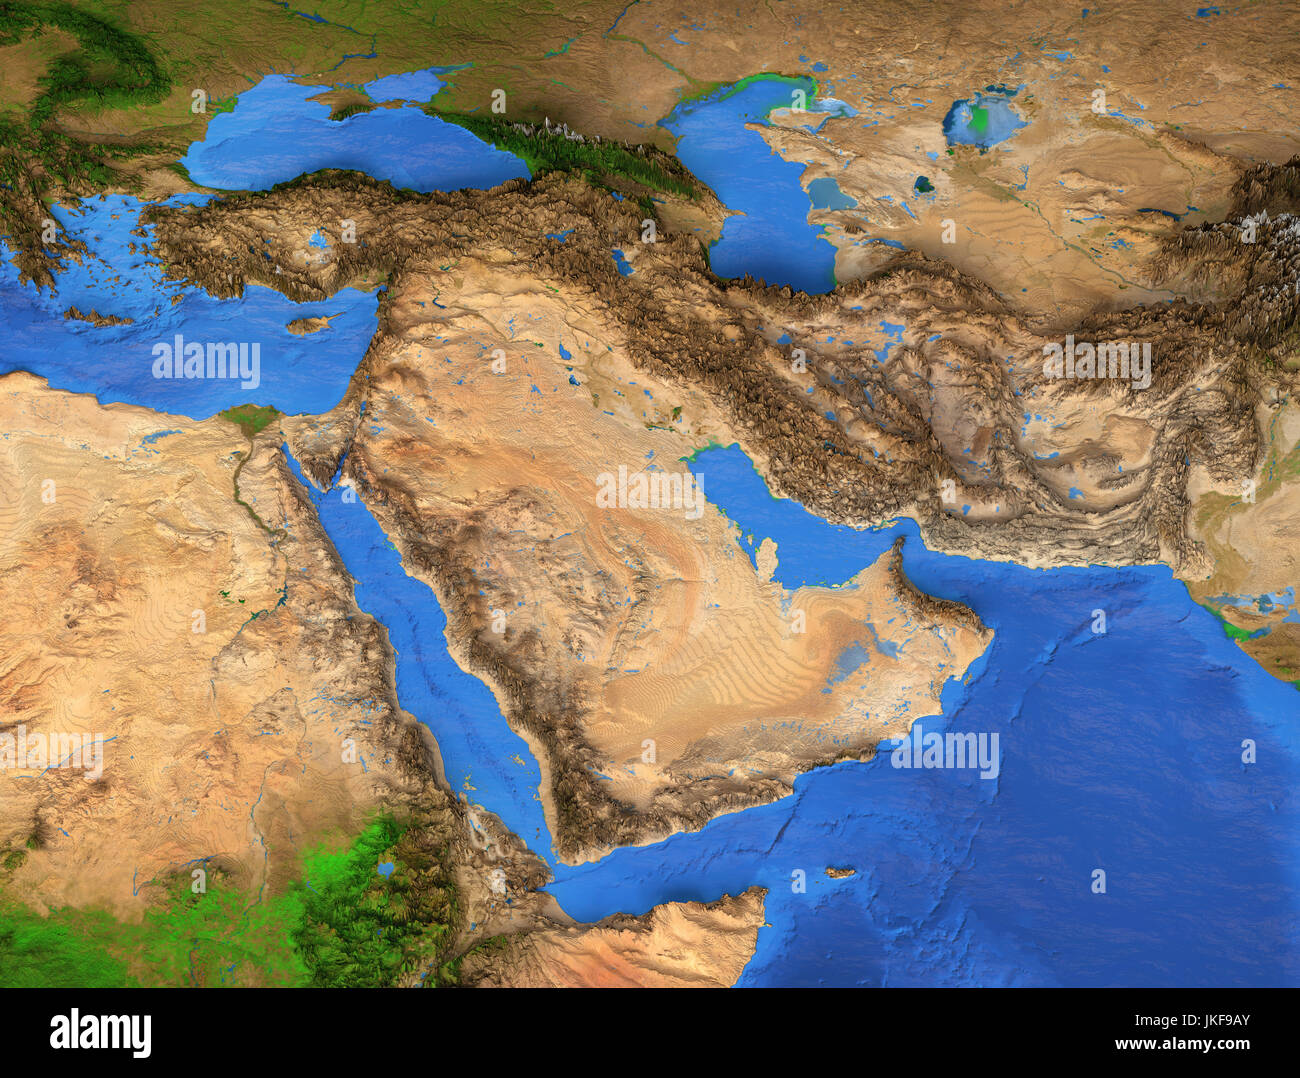 Satellite world map world maps national geographic maps world middle east map gulf region detailed satellite view of the world map satellite gumiabroncs